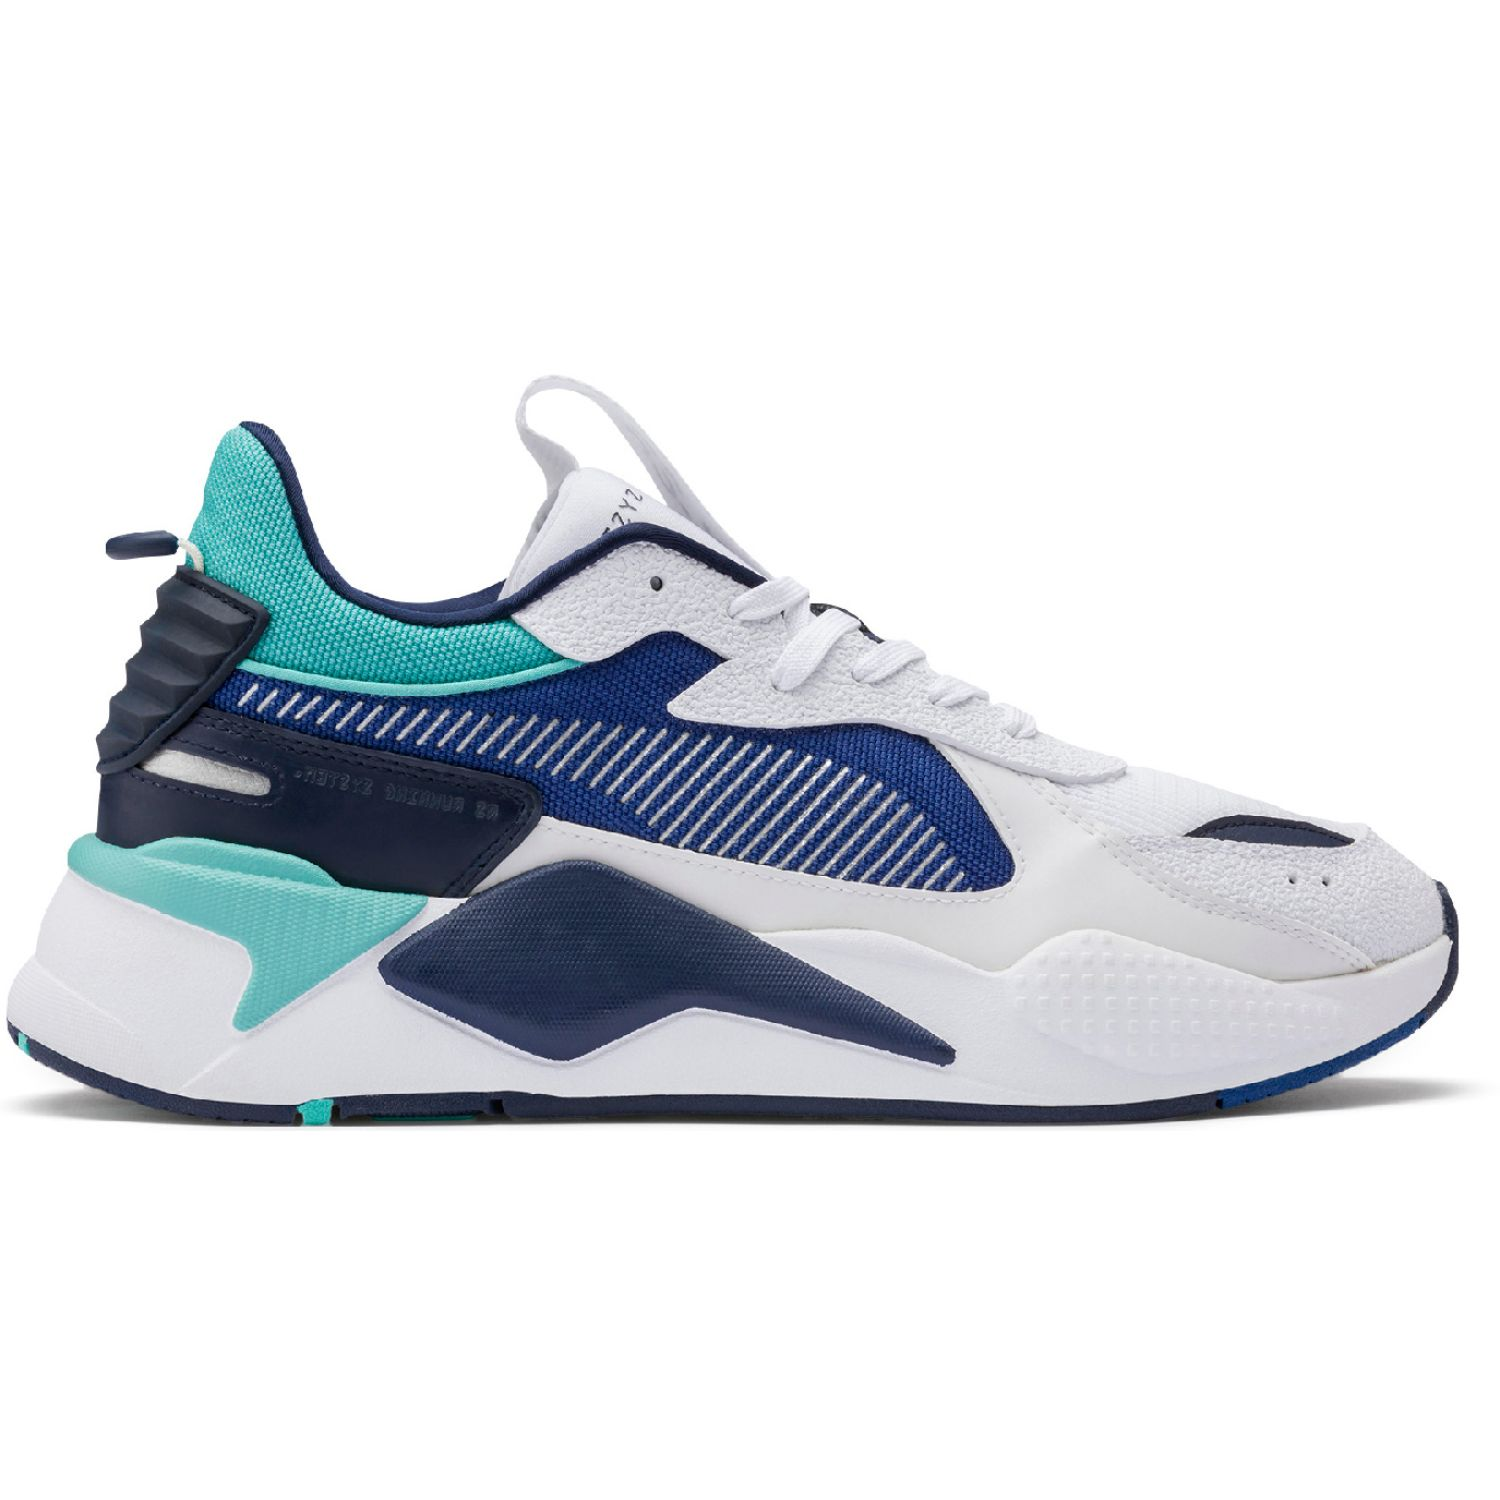 ruido acero roble  Puma RS-X HARD DRIVE Blanco / azul Walking | platanitos.com